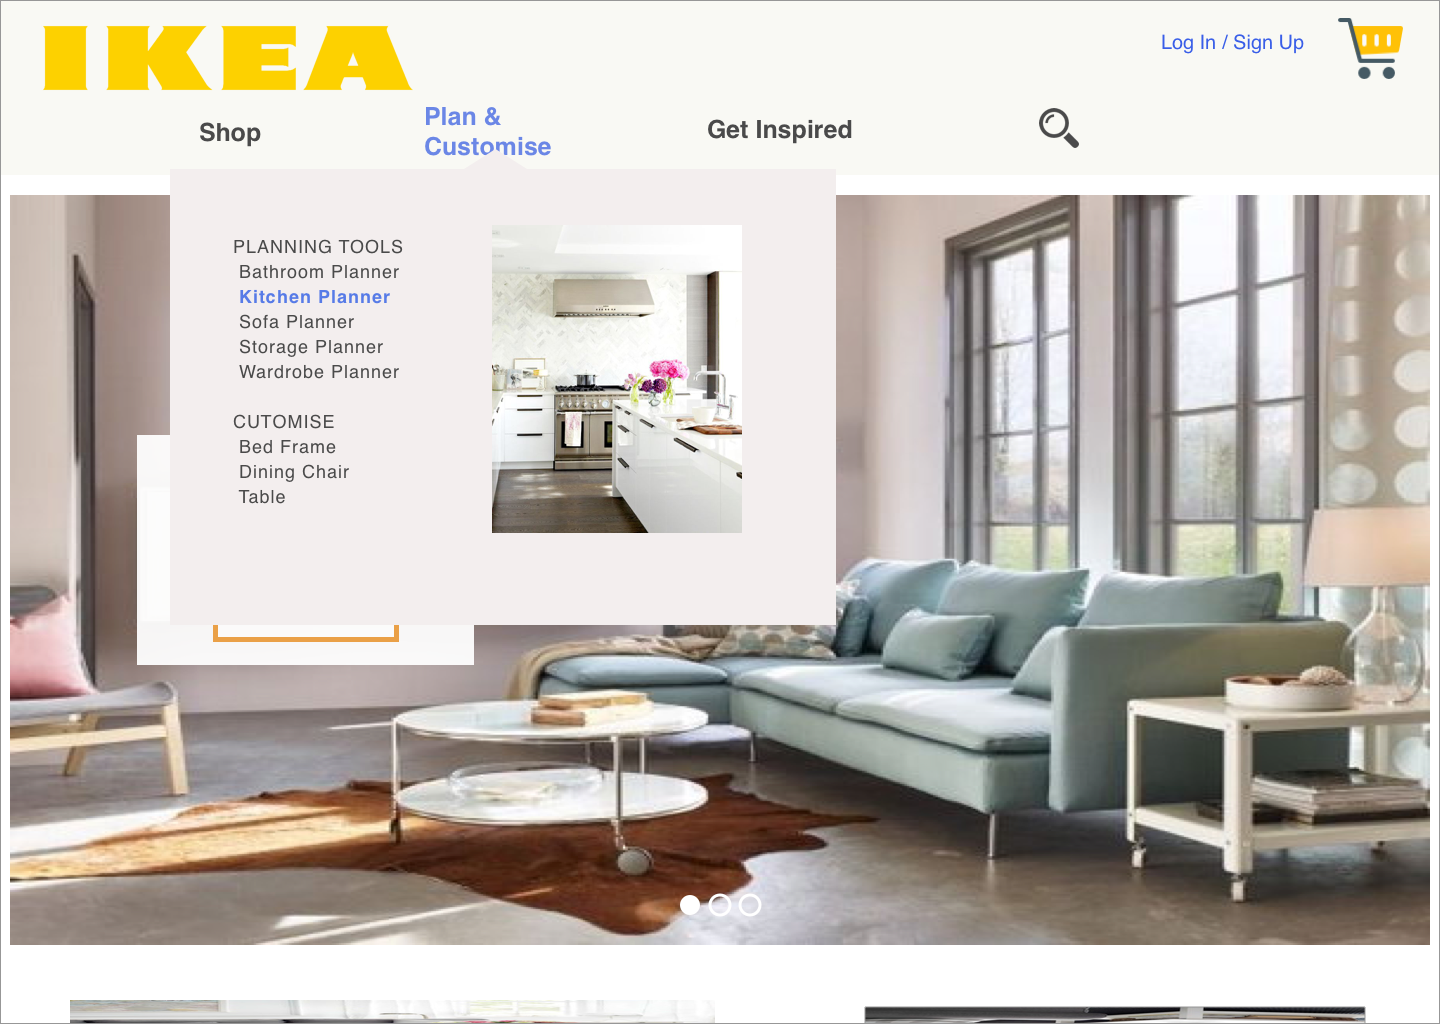 I you IKEA, but why is your website so…? - UX Collective Ikea Home Planner Not Loading on ikea besta planner, ikea storage planner, ikea wardrobe planner, ikea furniture planner, ikea bedroom planner, ikea keuken planner, ikea media planner, ikea office planner, ikea basement planner, custom moleskine planner, ikea 3d planner, ikea desk planner, ikea bathroom planner, home work planner, ikea laundry planner, home building planner, ikea floor planner, home depot home planner, ikea closet planner,